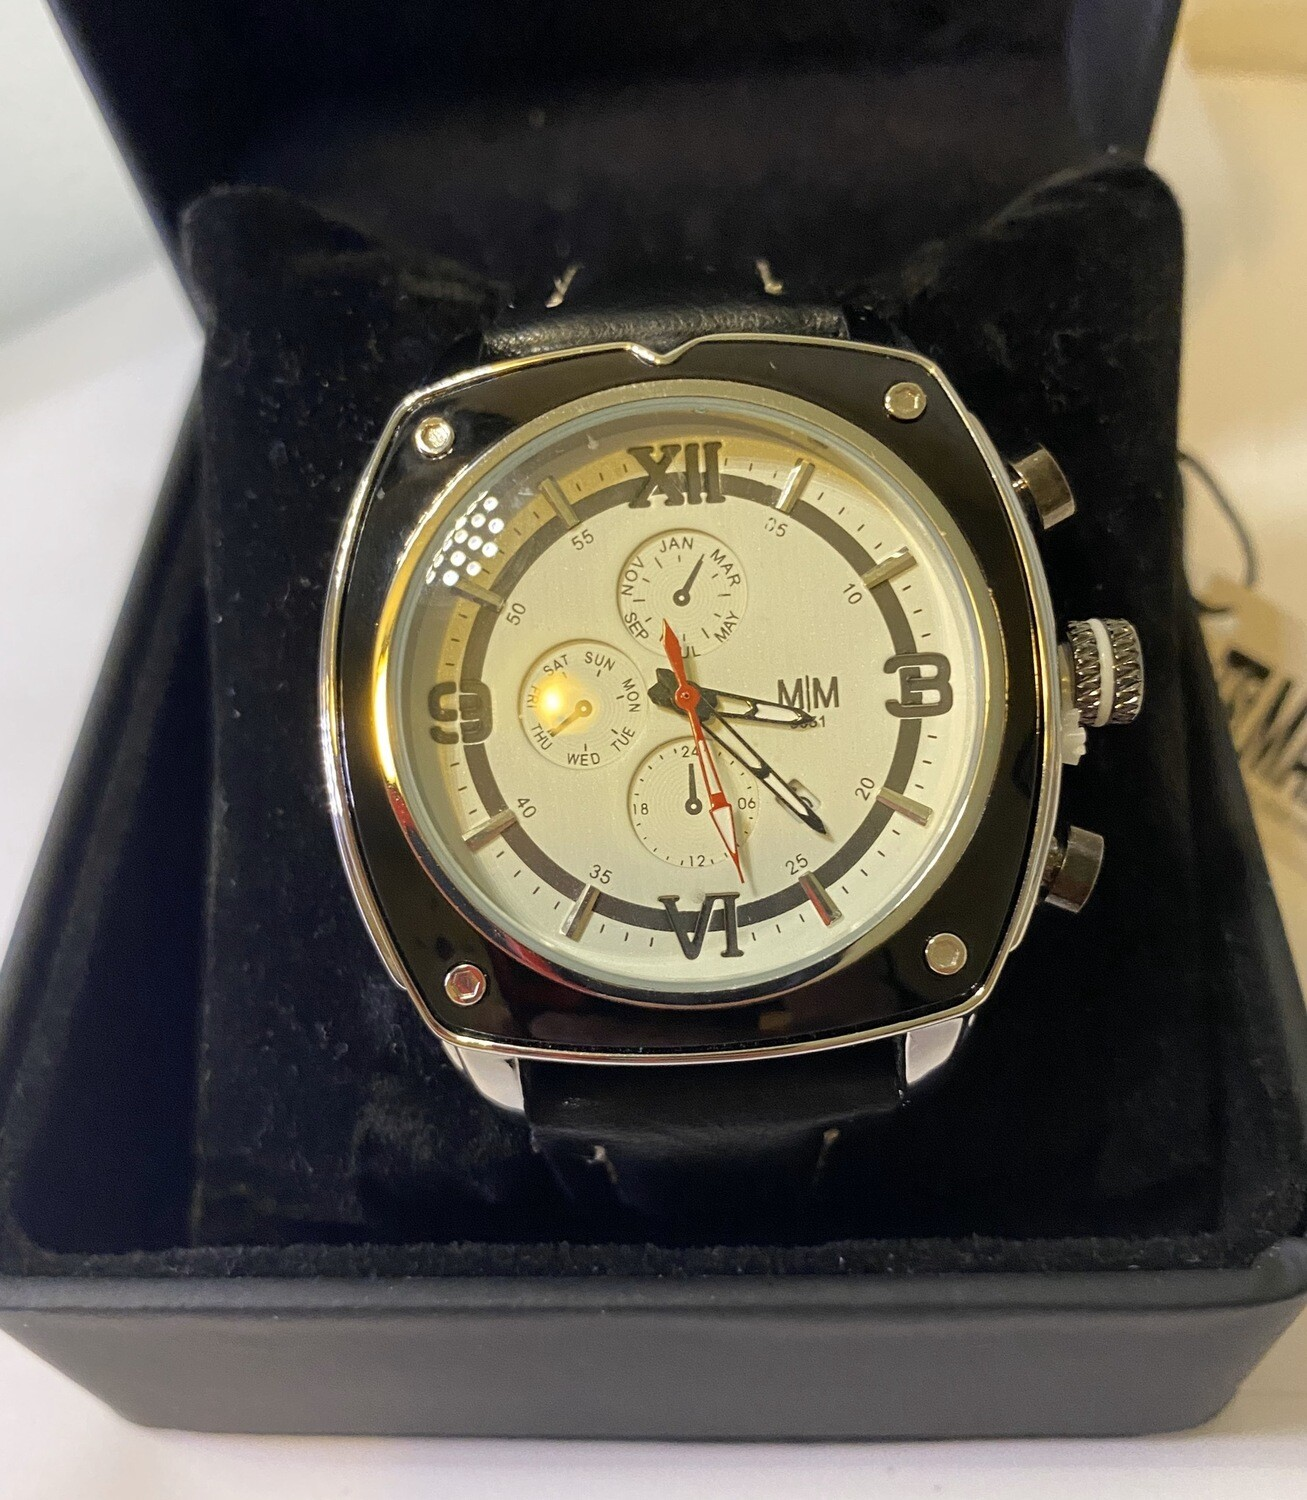 Mad Man Sport Watch w Date Japanese Quartz Batterie Operated. Cream And Silver Face. Blk Strap W Wht Stitch.